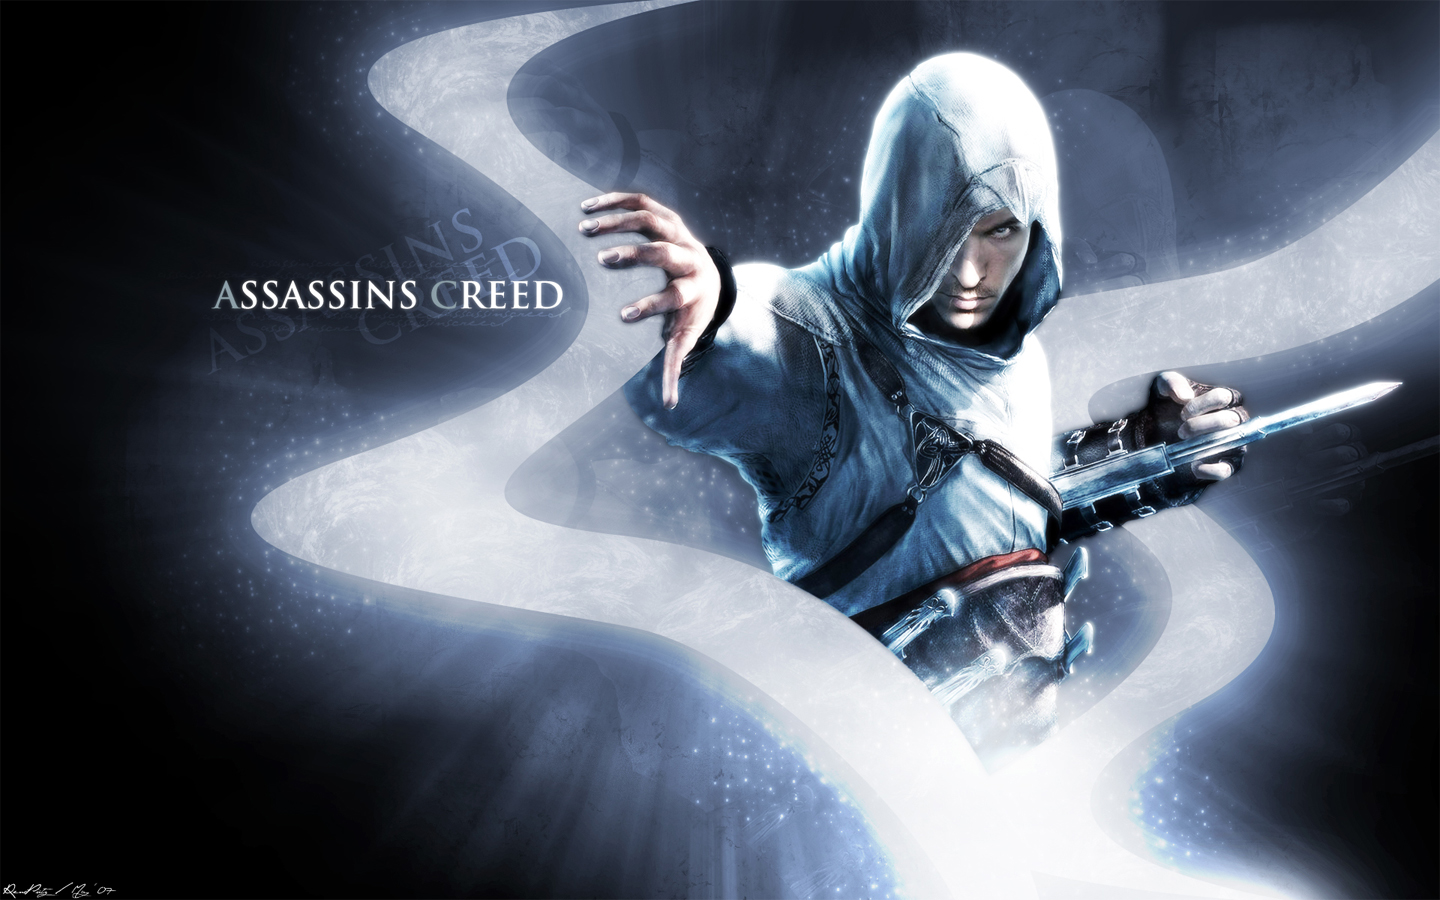 [35+] Assassin's Creed Live Wallpaper on WallpaperSafari